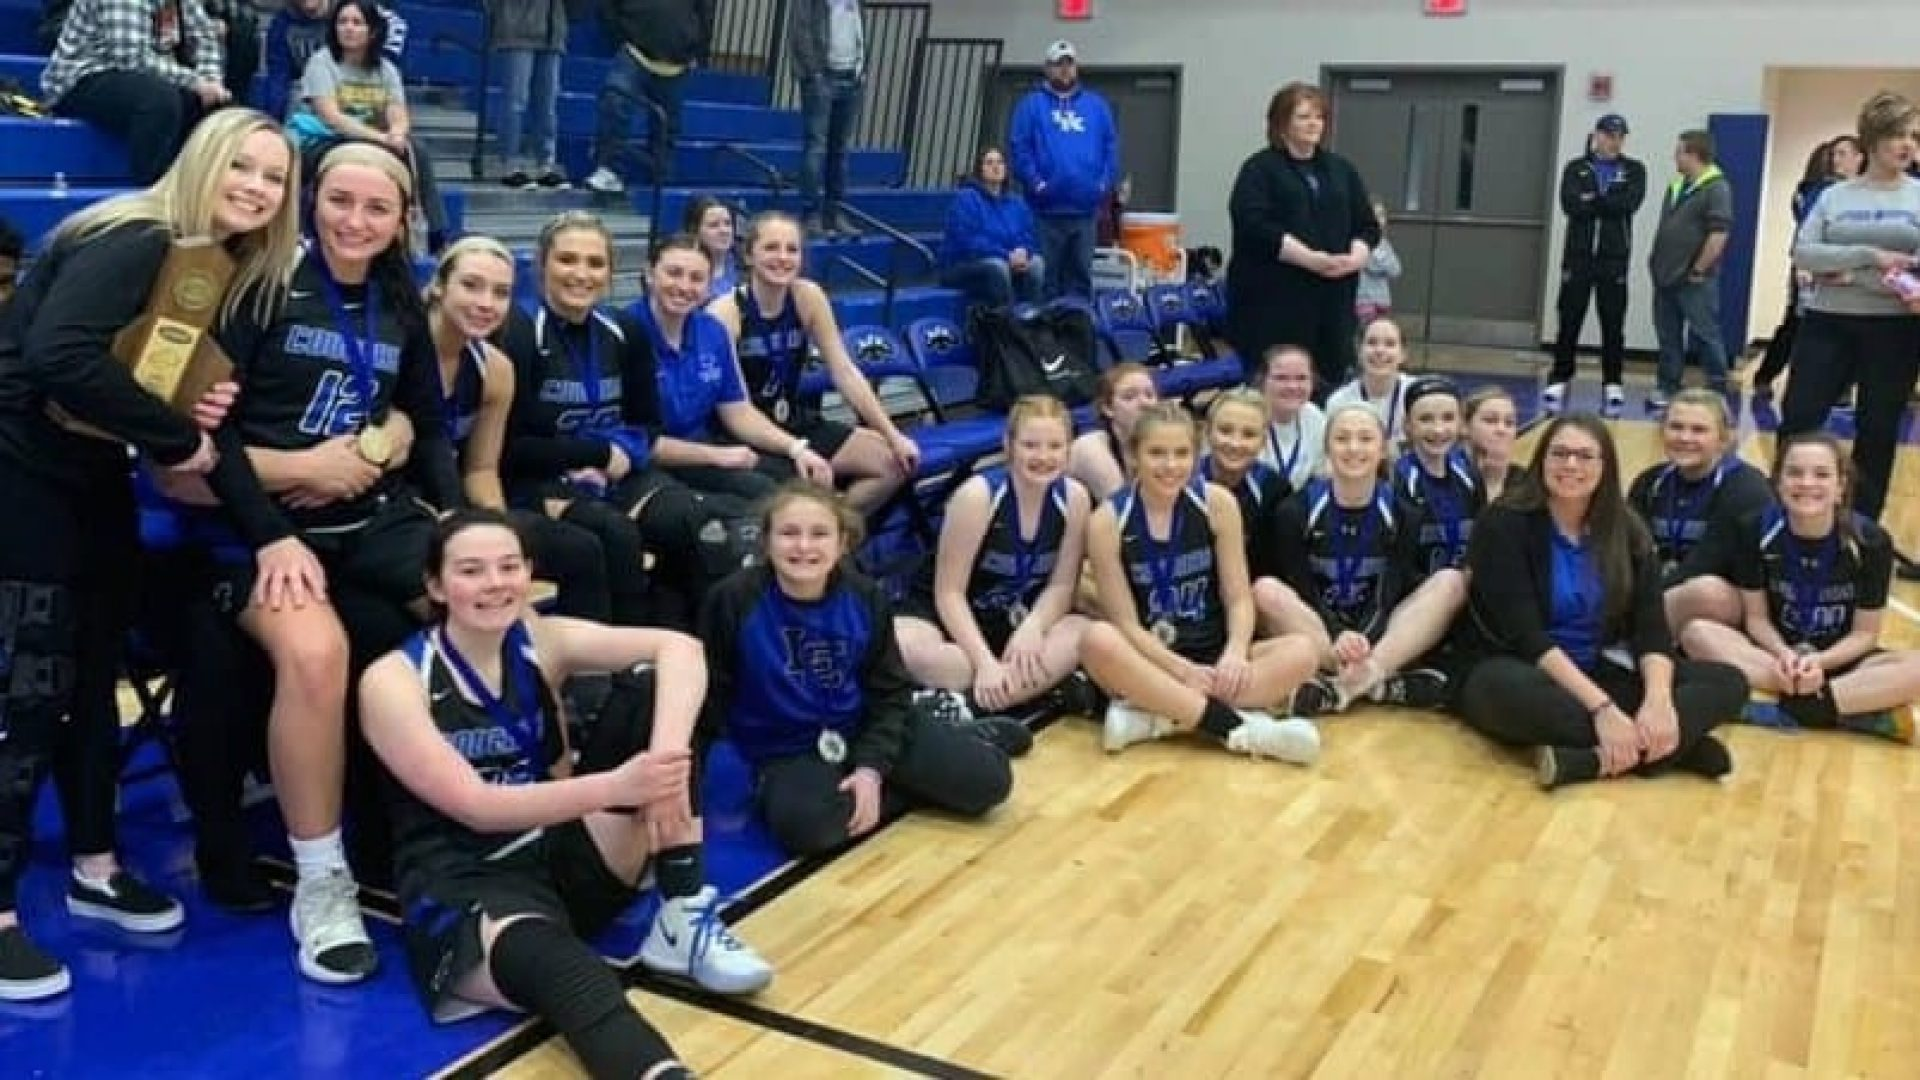 53RD DISTRICT TOURNAMENT: Back-to-back titles for Lady Cougars